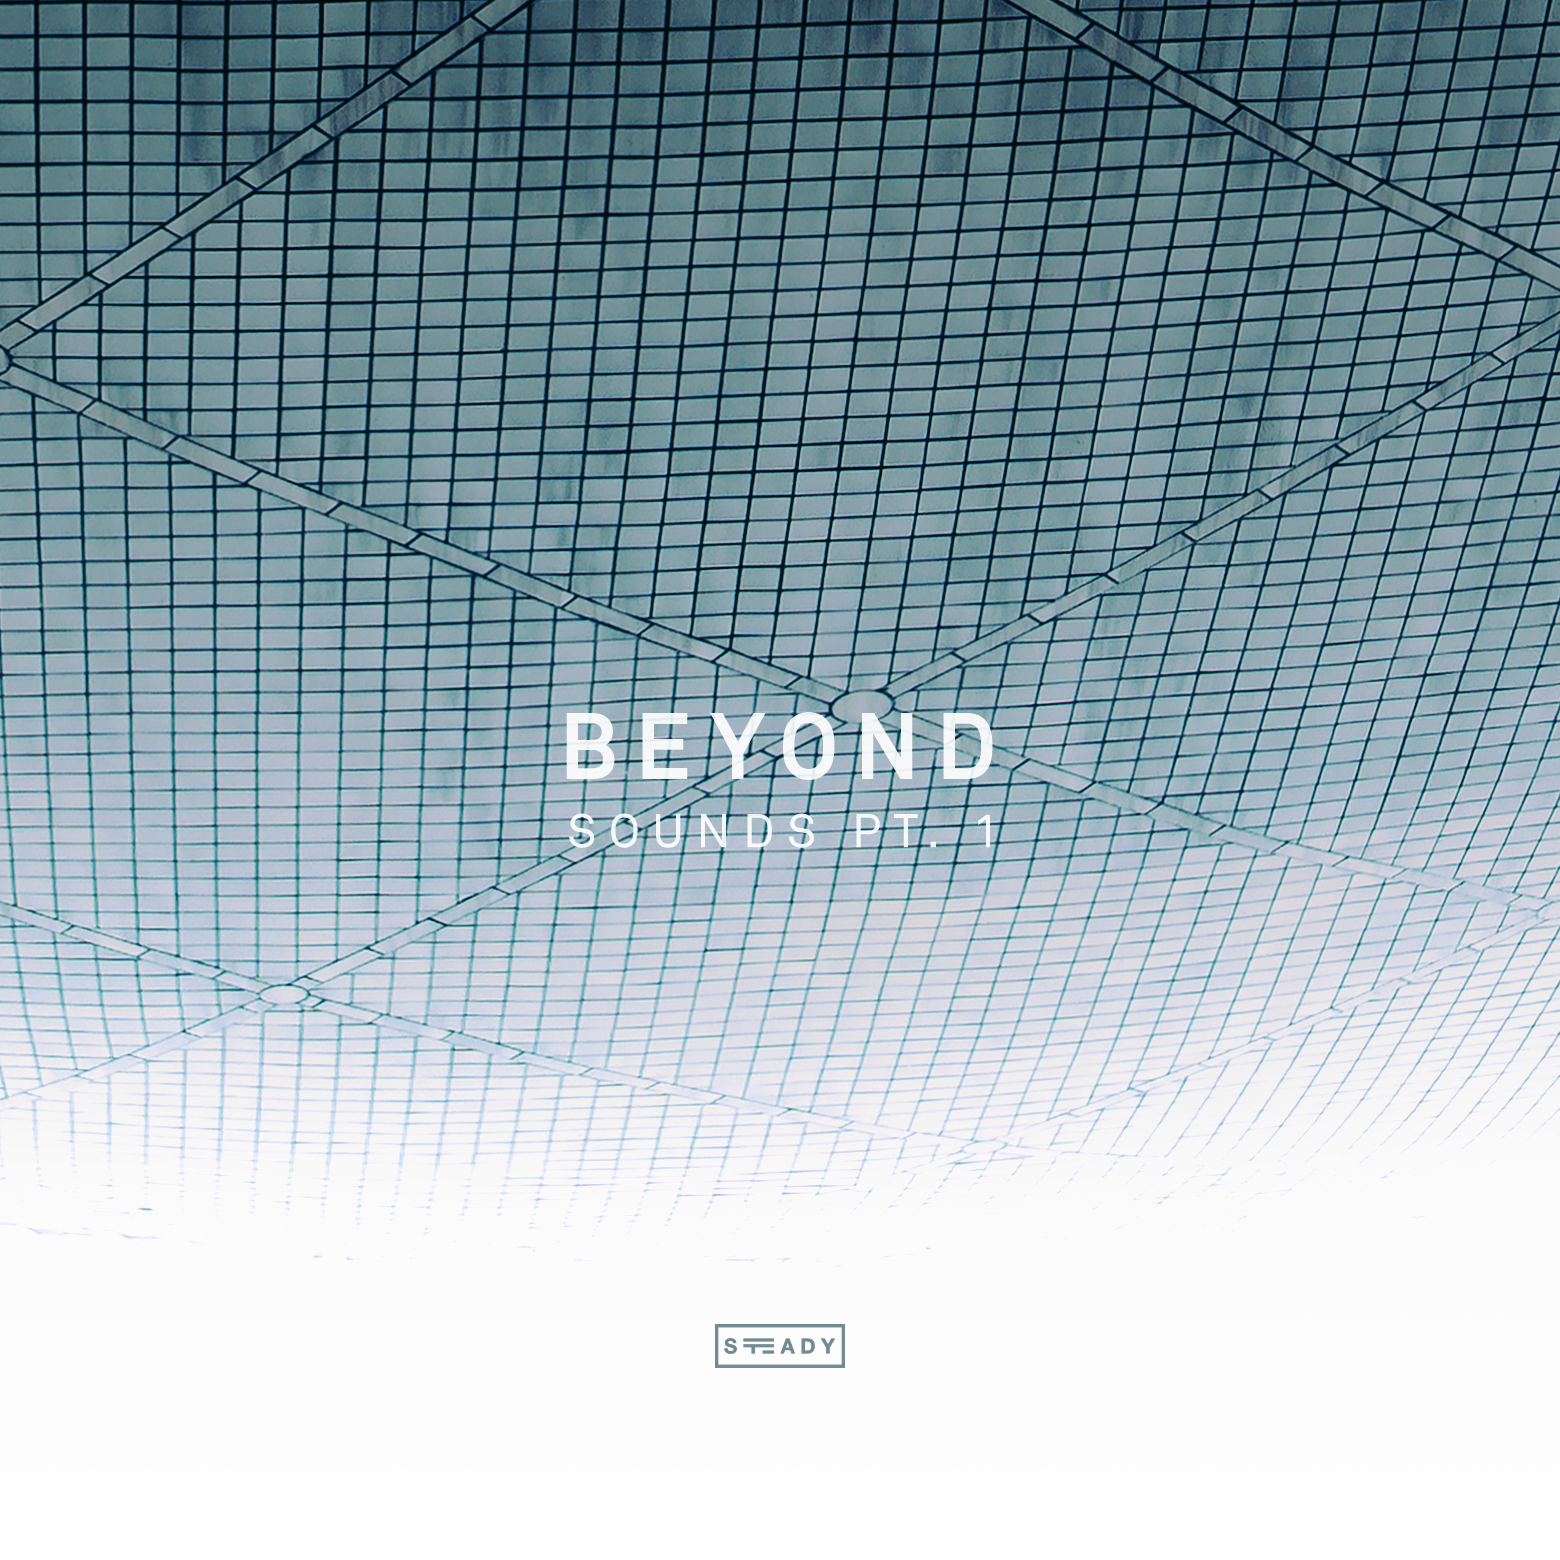 STEADY BUMPIN': 'BEYOND' SOUNDS PT.1